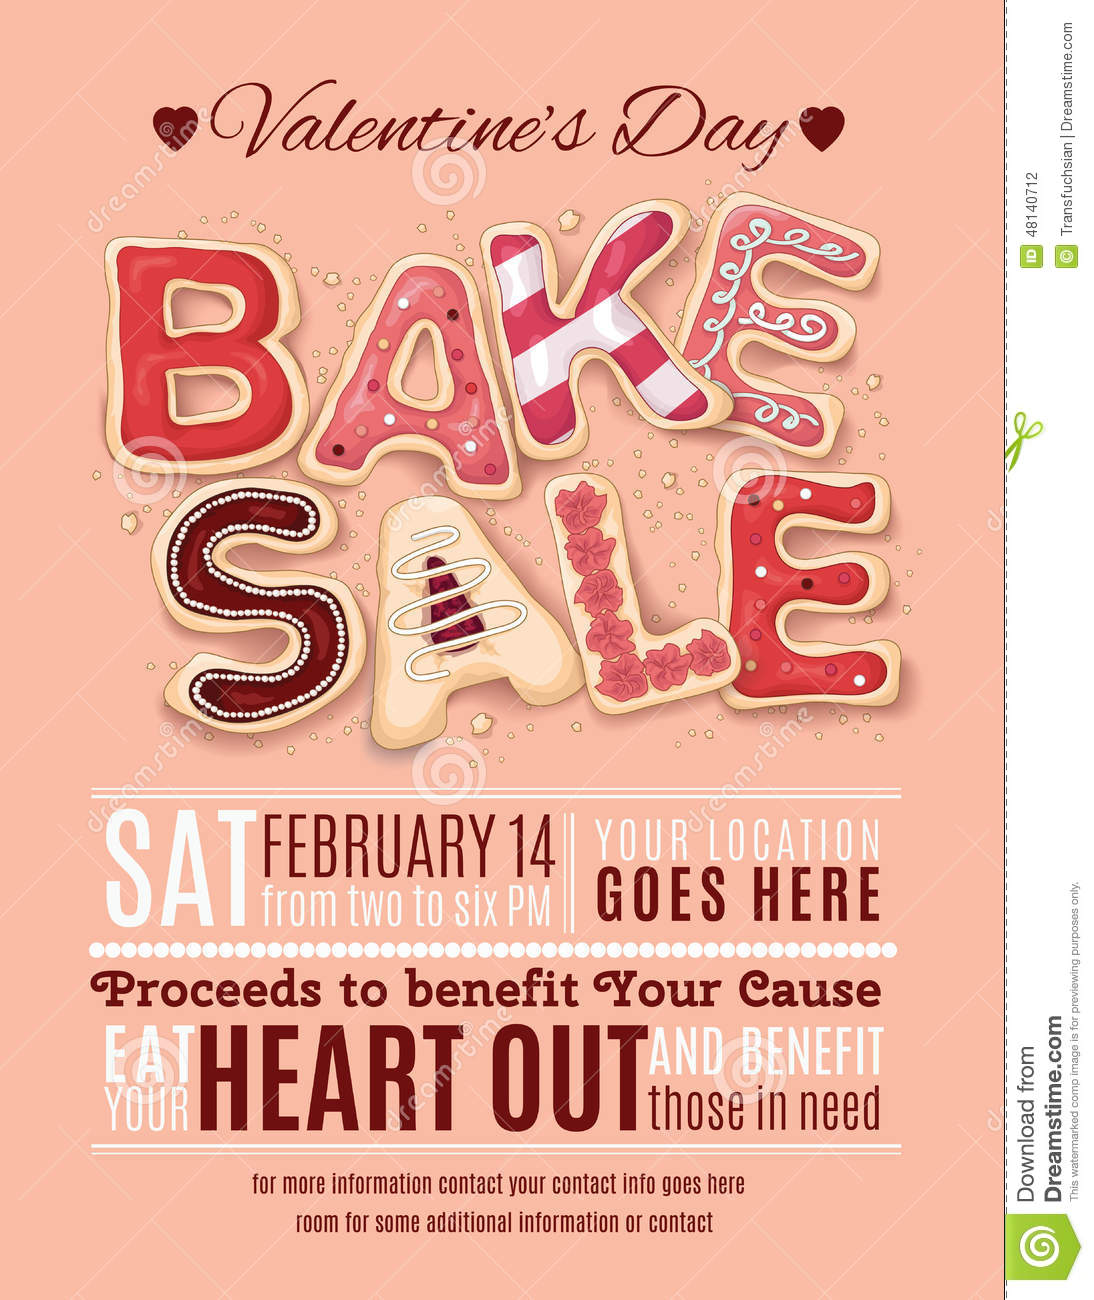 valentines day bake flyer template stock vector image  valentines day bake flyer template